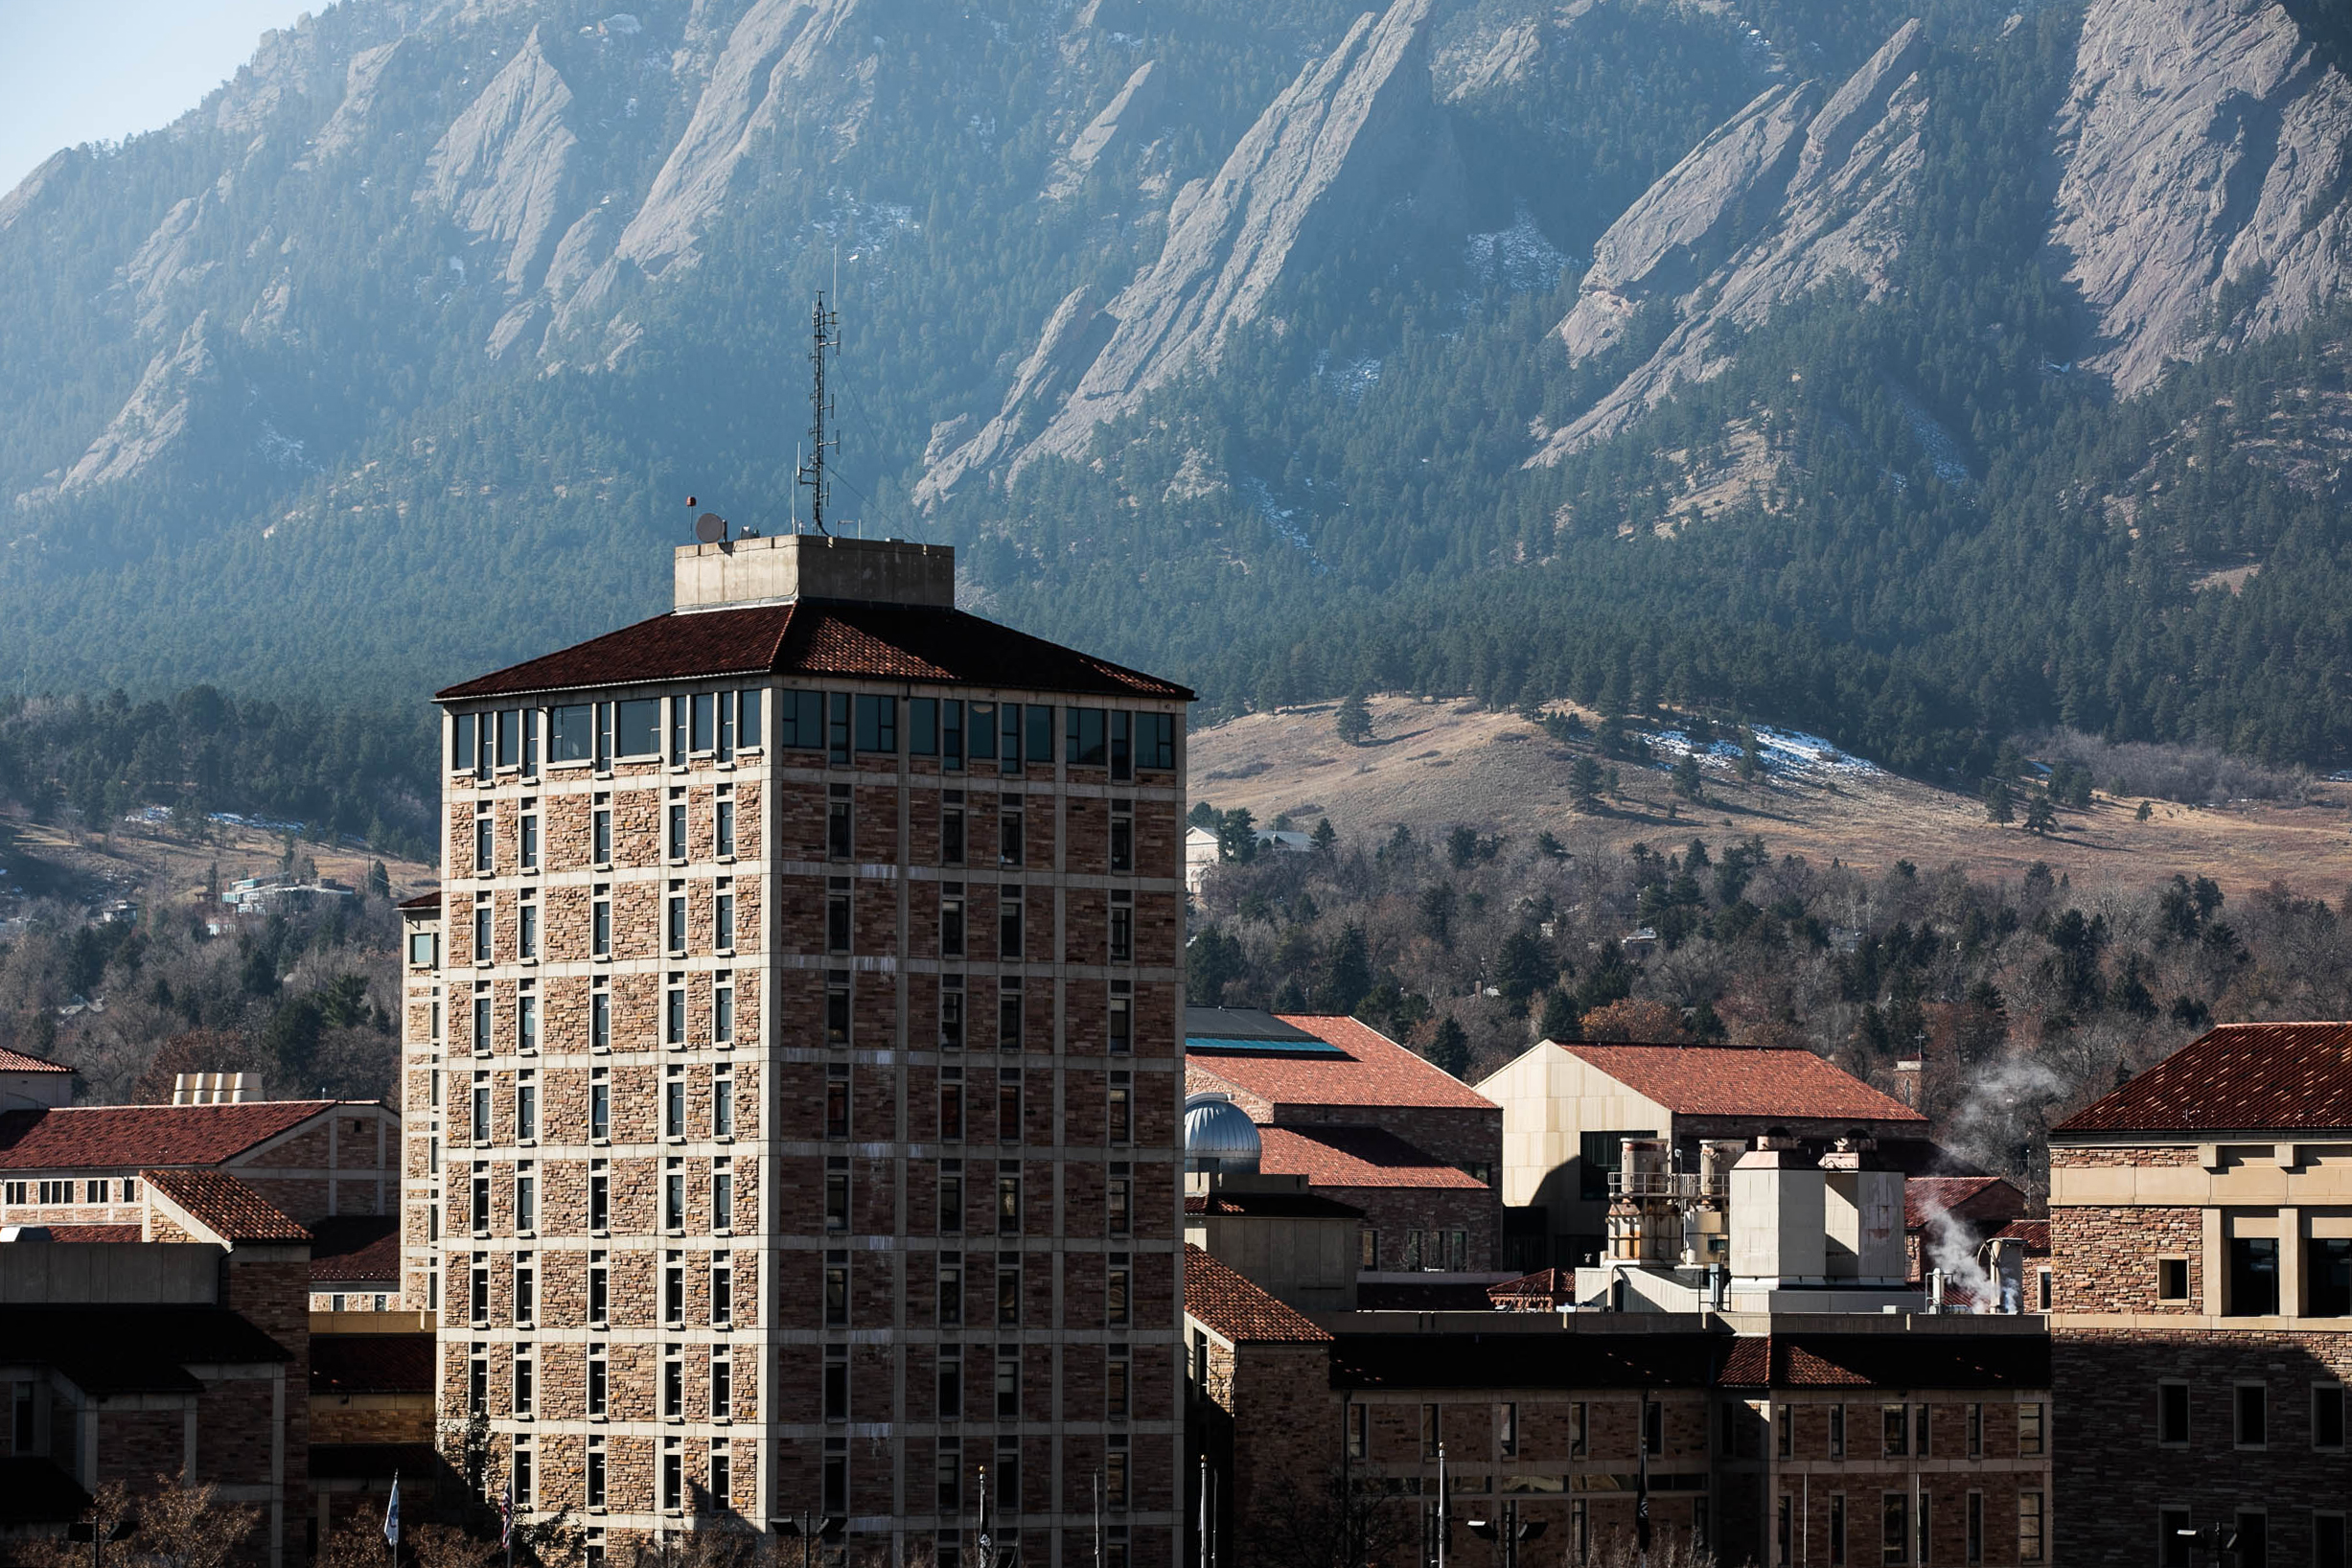 The CU Boulder campus, with the Flatirons in the background